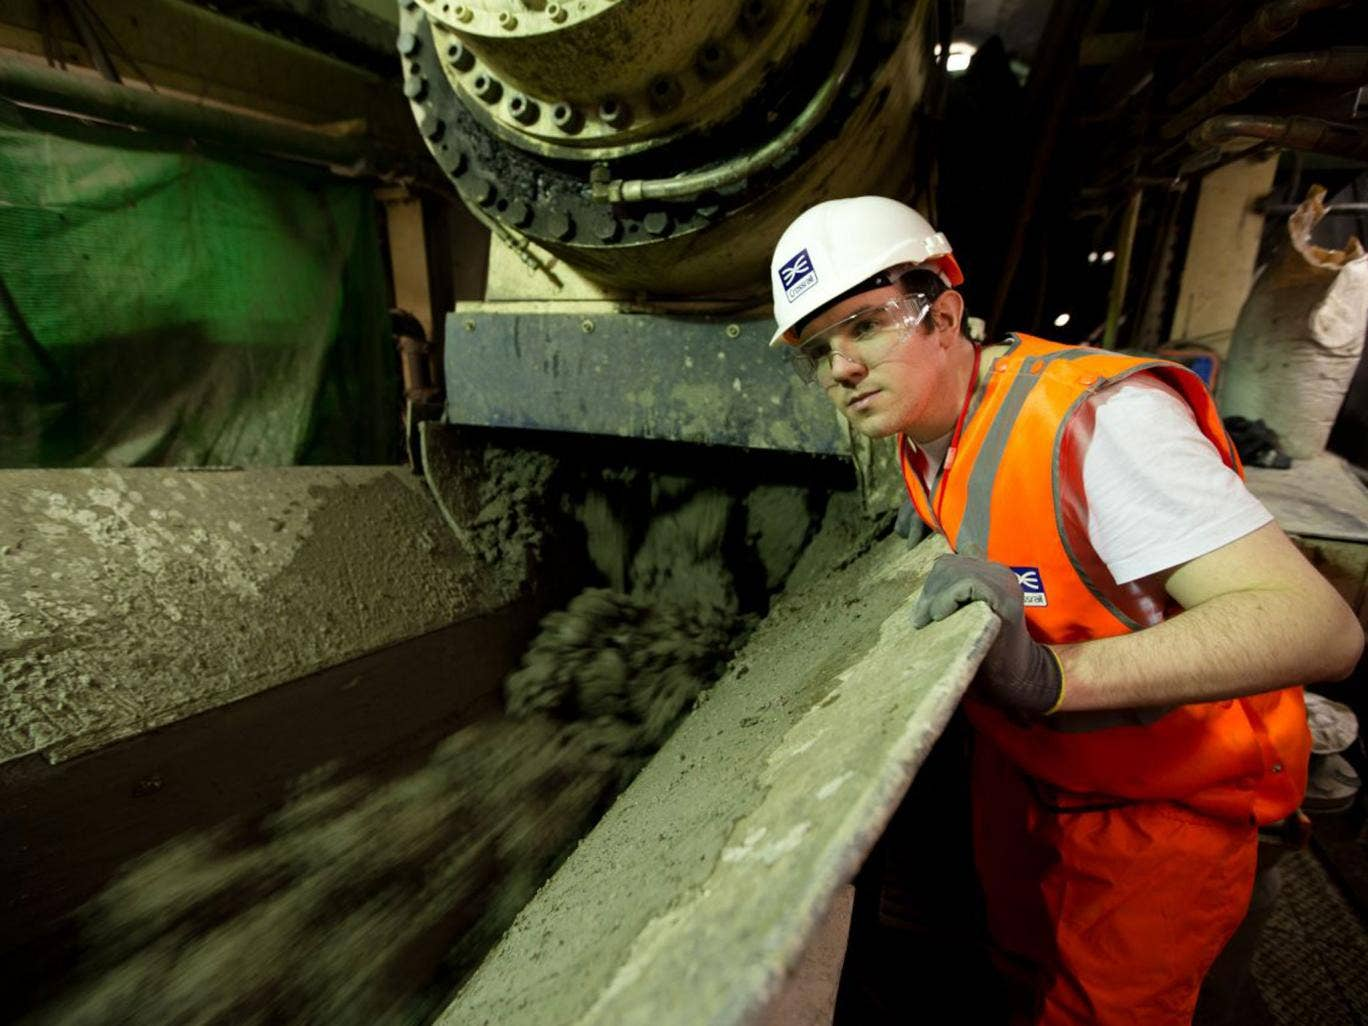 Reporter Rob Hastings watches the excavated 'muck' begin its journey down the conveyor belt